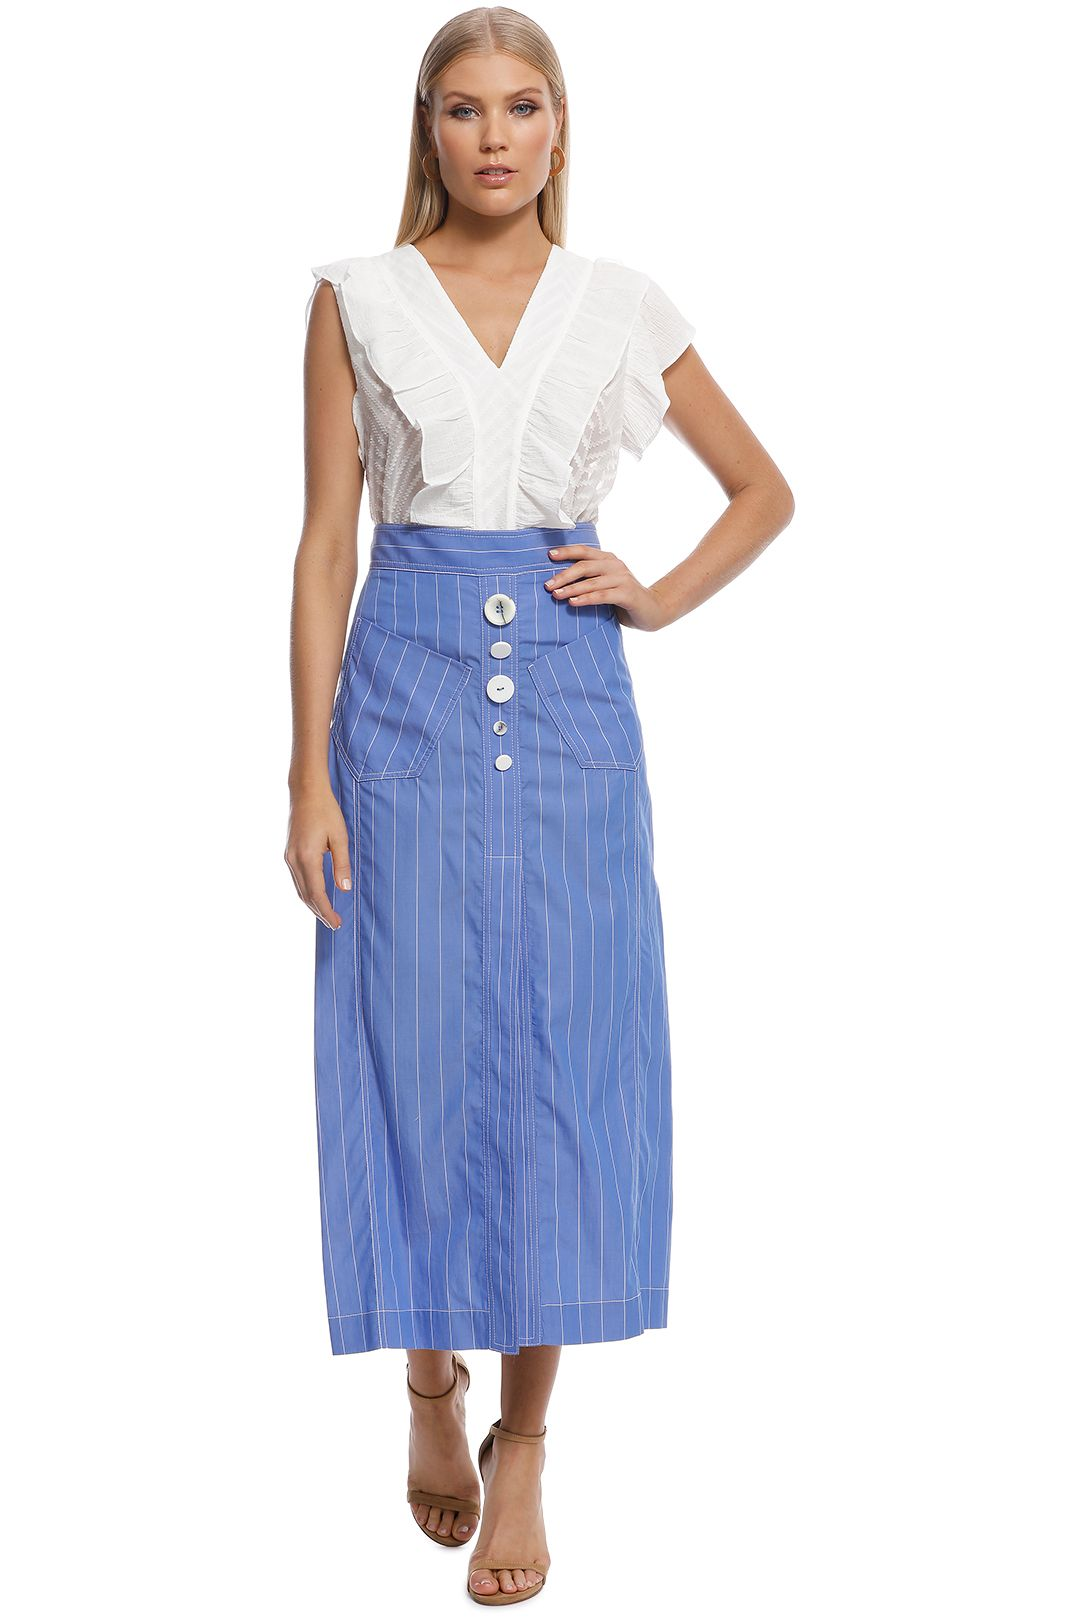 Ellery - Aggie A-Line Skirt - Blue - Front